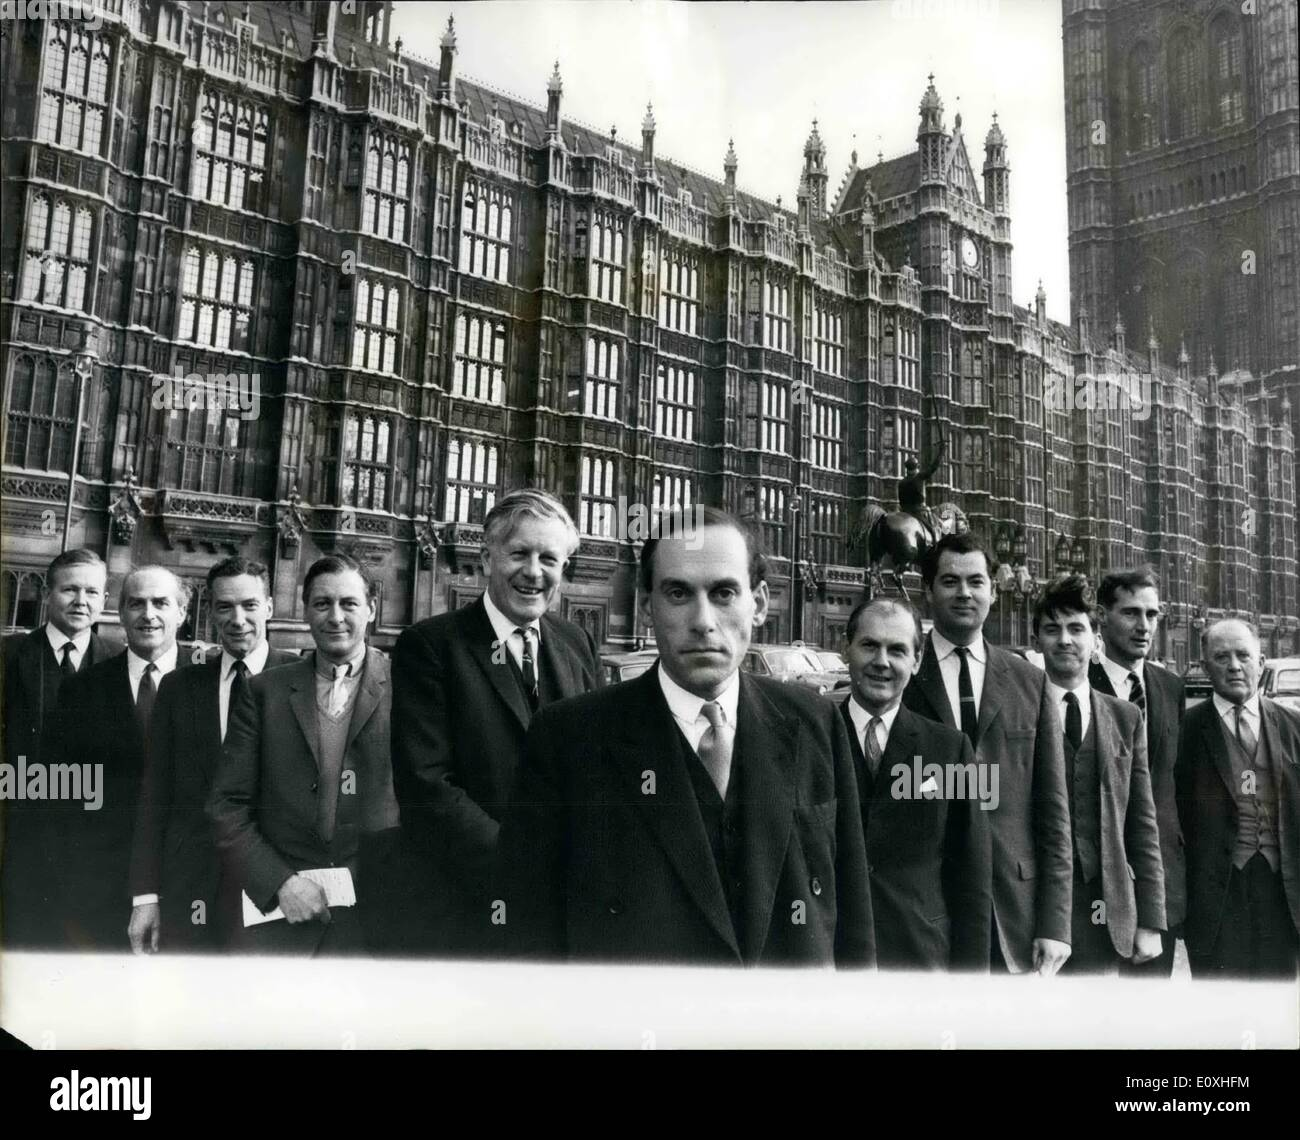 Jan. 01, 1967 - Presenting 91.66 per cent (including the new leader) of the Parliamentary Liberal Party.: Mr. Jo Grimond this week resigned as leader of the Liberal Party and Mr. Jeremy Thorpe was elected to succeed him. yesterday, the Parliamentary Liberal party appeared outside the Palace of Westminster in their revised formation. In fact, this picture shows only 91.66 per cent. of the Liberal Party in the Commons. there are 12 of them there now; but their twelfth man (or residual 8.34 percent), Mr. Russell Johnston, was away at his Inverness (Scotland) constituency. Photo shows the 91 - Stock Image